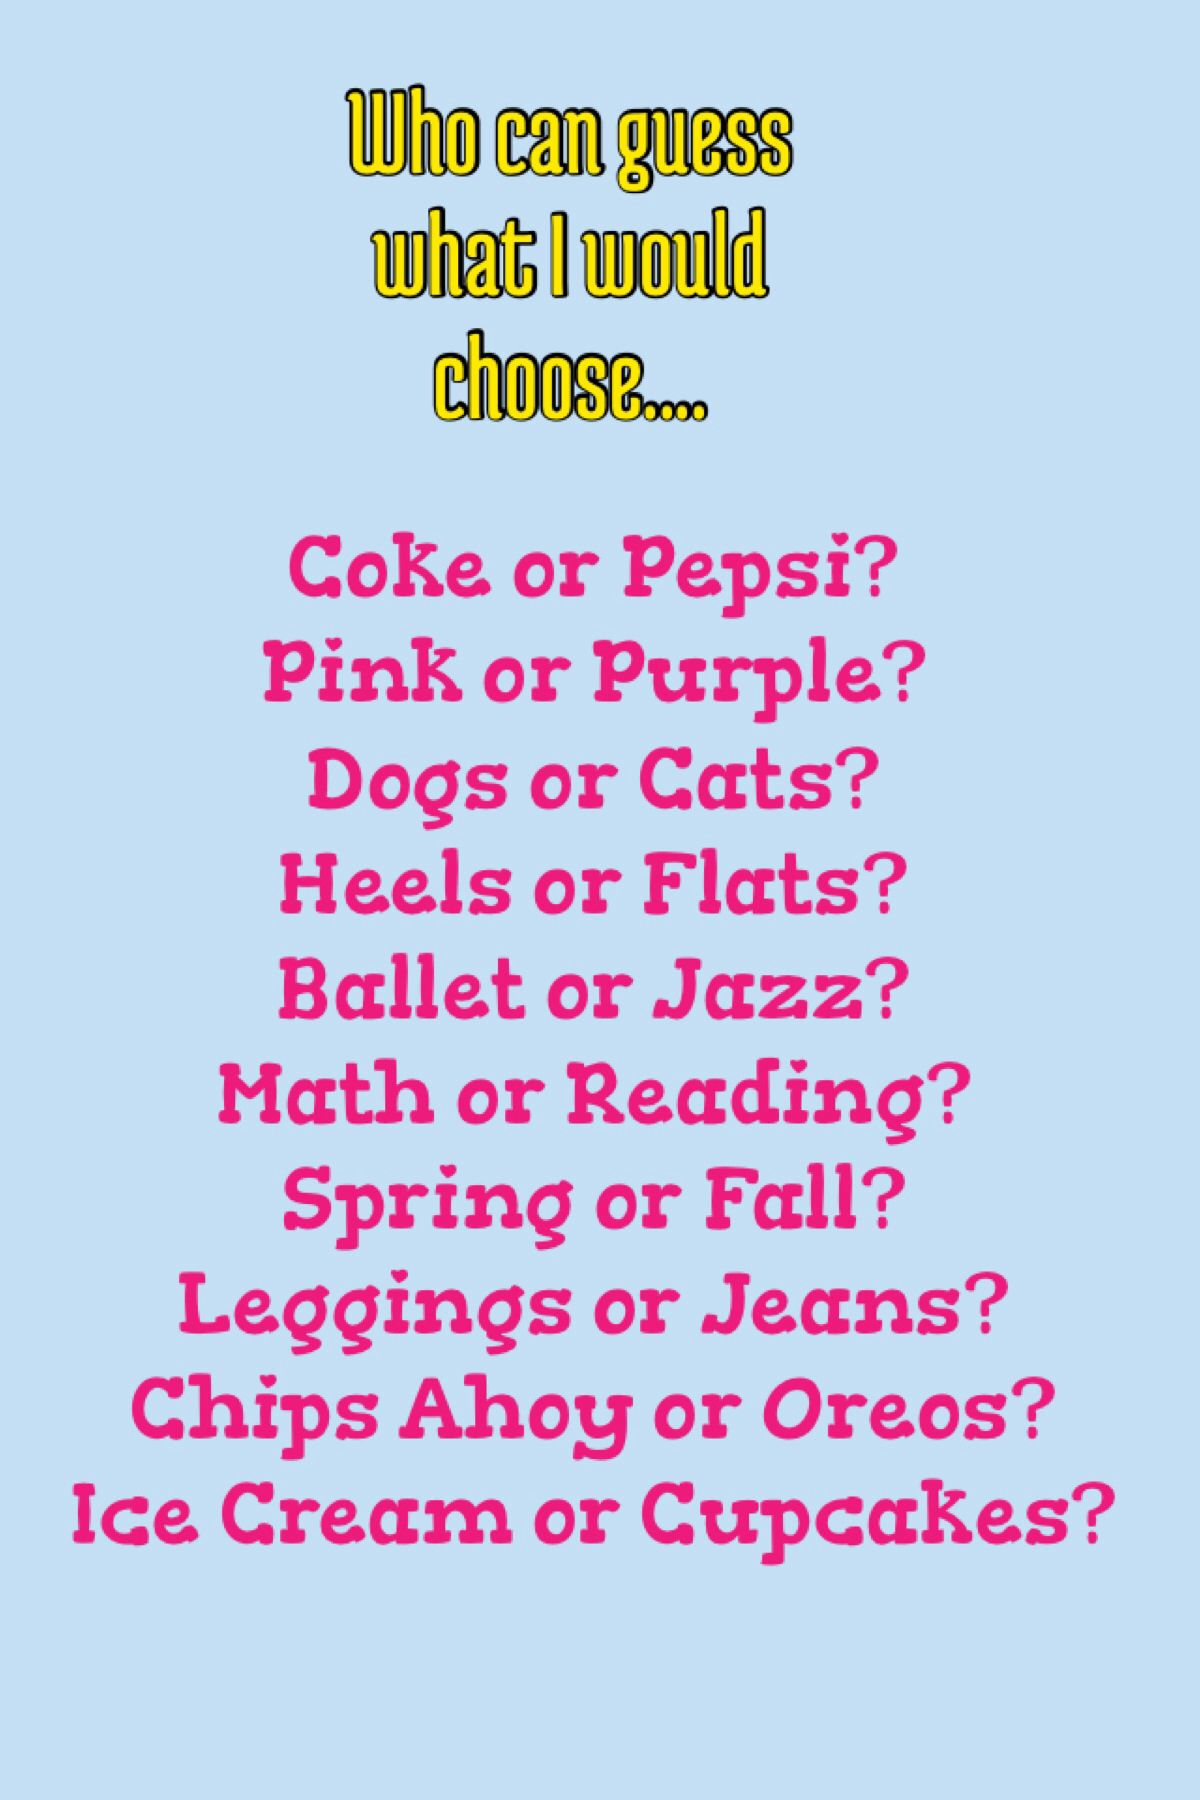 Coke or pepsi quizzes